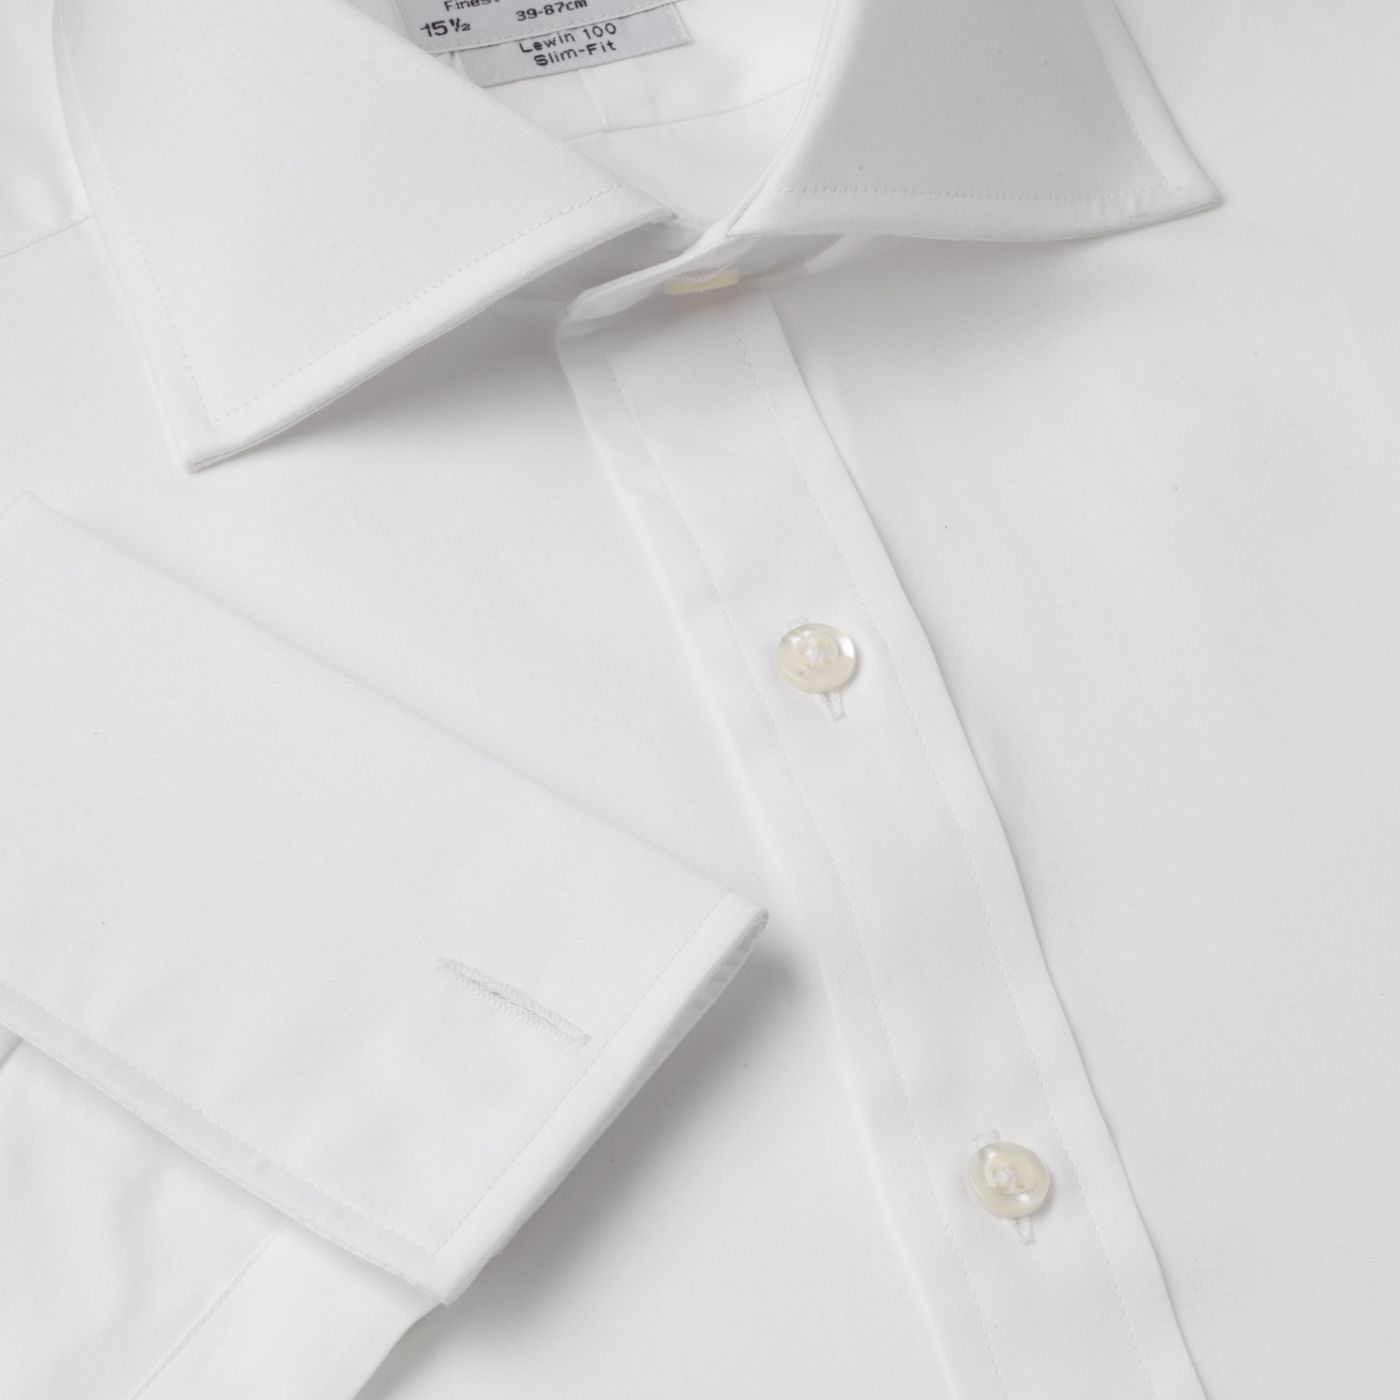 Plain 2-fold poplin Windsor shirt